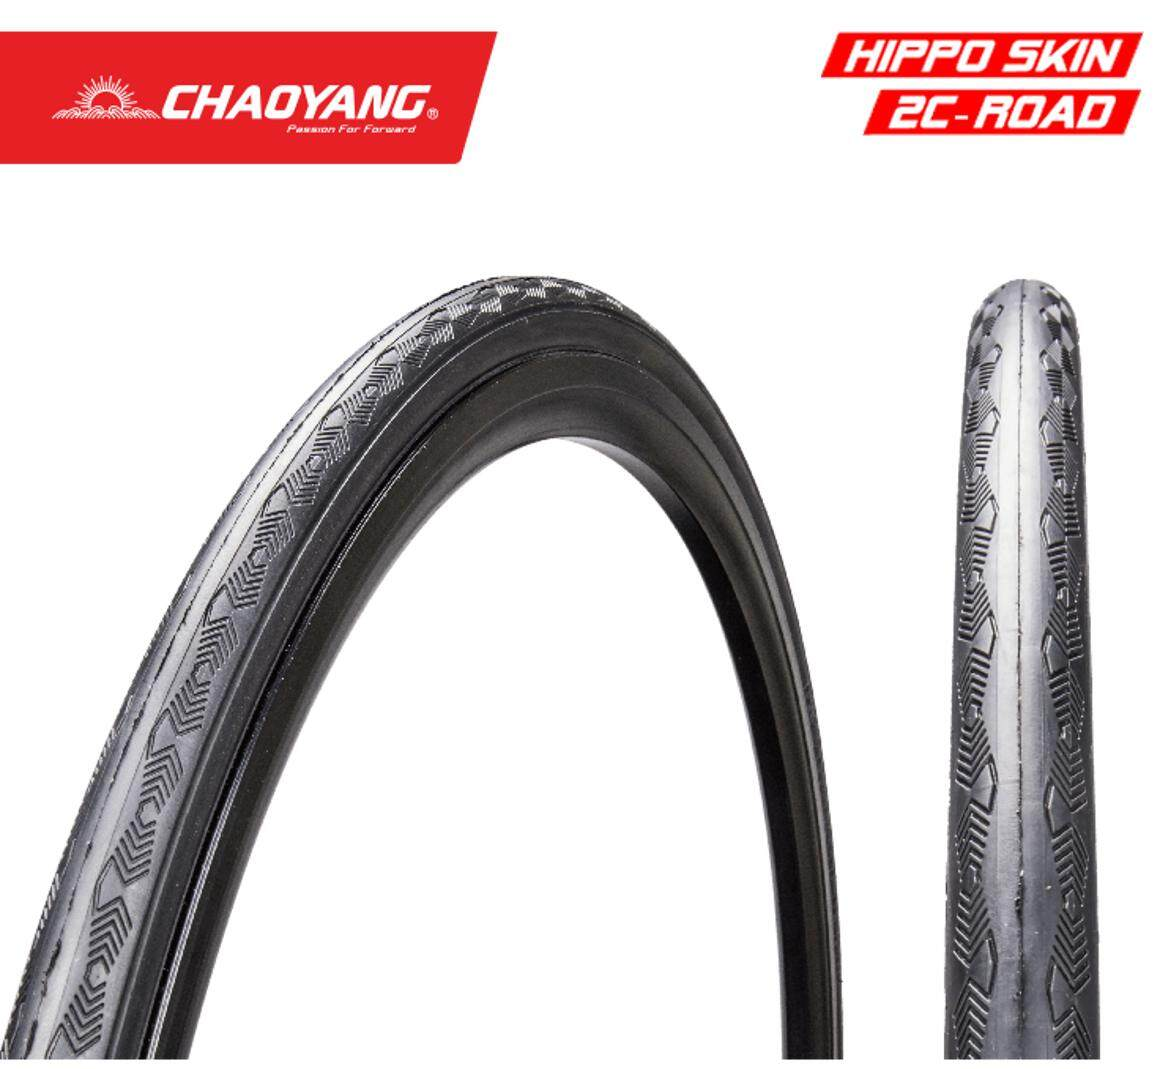 1x CHAOYANG Attack Pard 700×25 HippoSkin 30Tpi Road Bike Bicycle Tyre [W311123] ยางรถจักรยาน